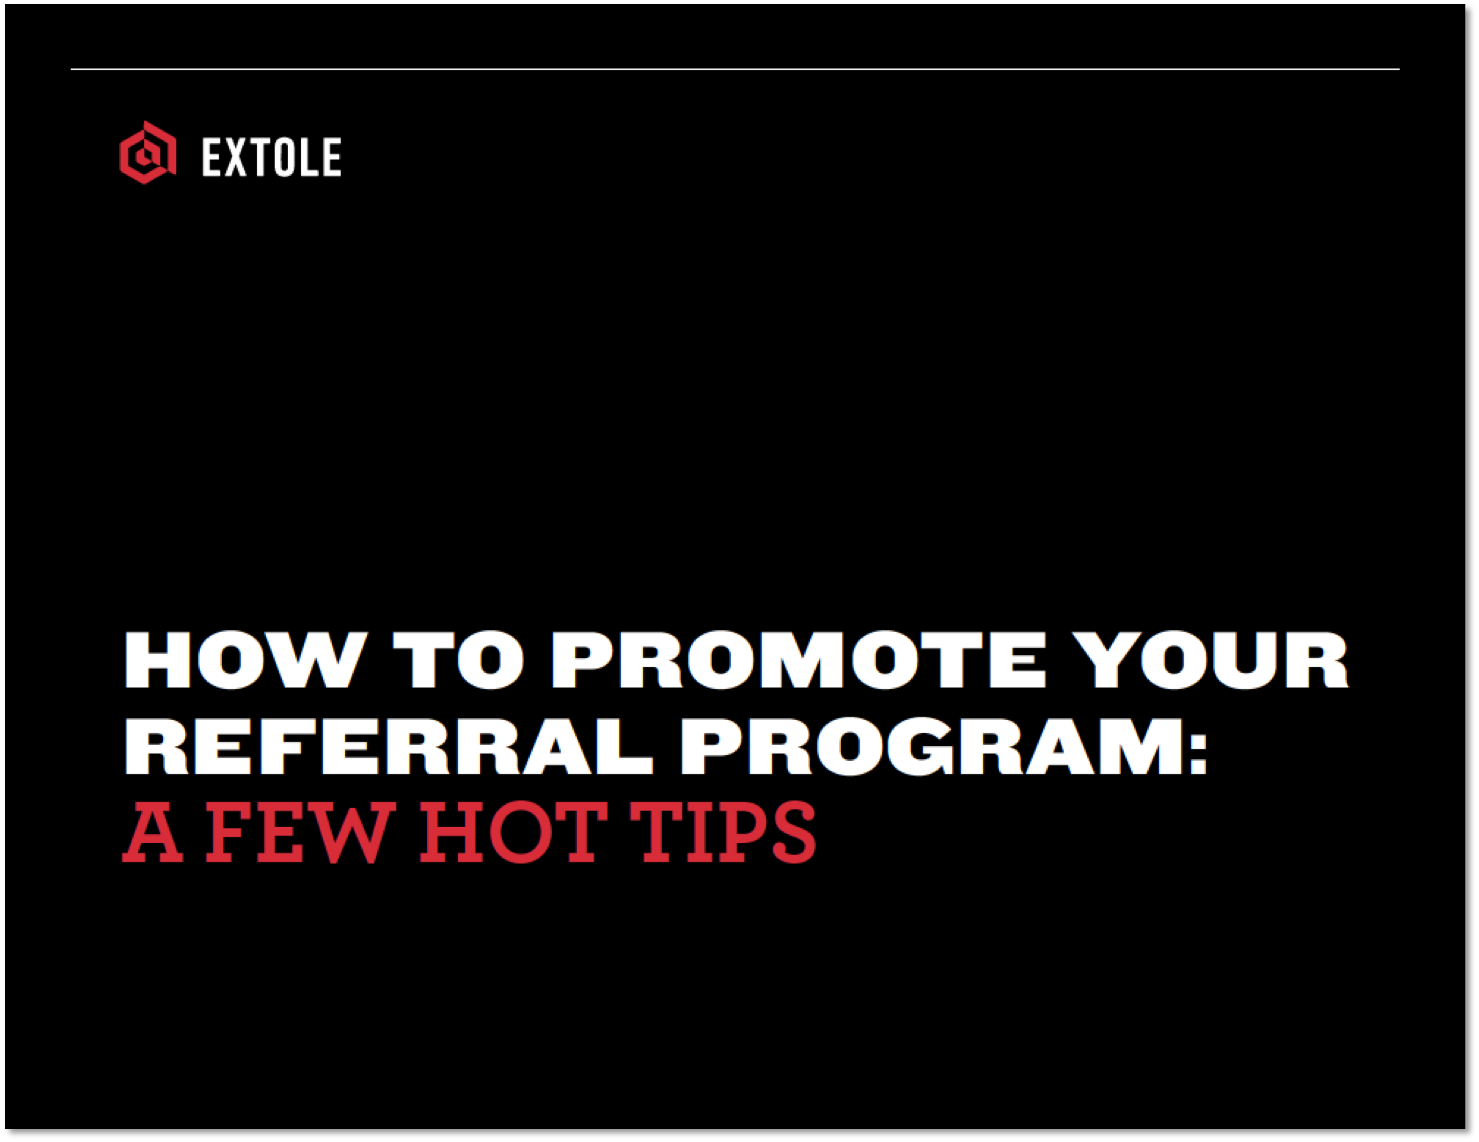 How to Promote Your Referral Program: A Few Hot Tips